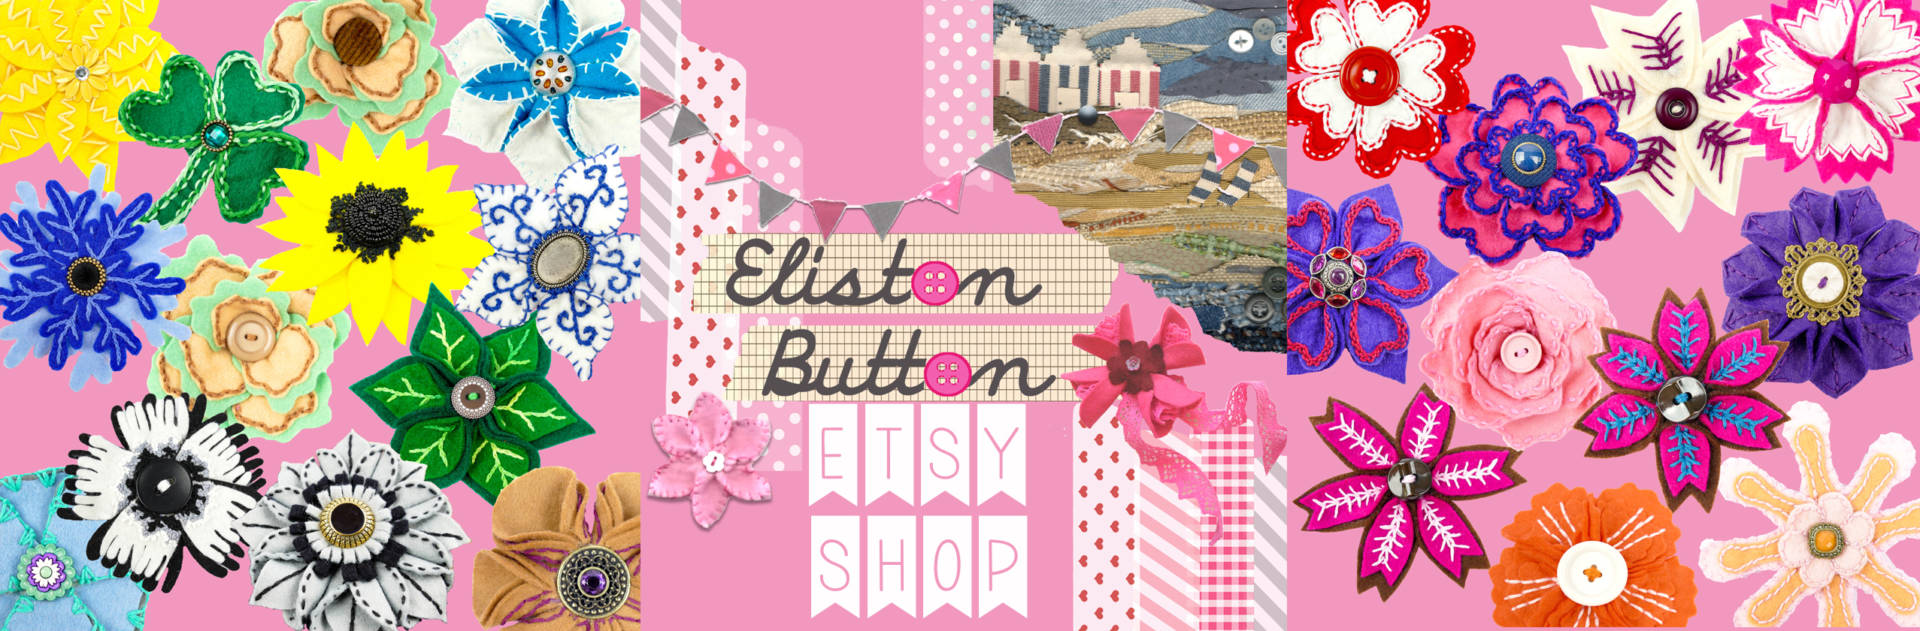 Eliston Button Etsy Shop Banner - Eliston Button Etsy Shop Refresh at www.elistonbutton.com - Eliston Button - That Crafty Kid – Art, Design, Craft & Adventure.